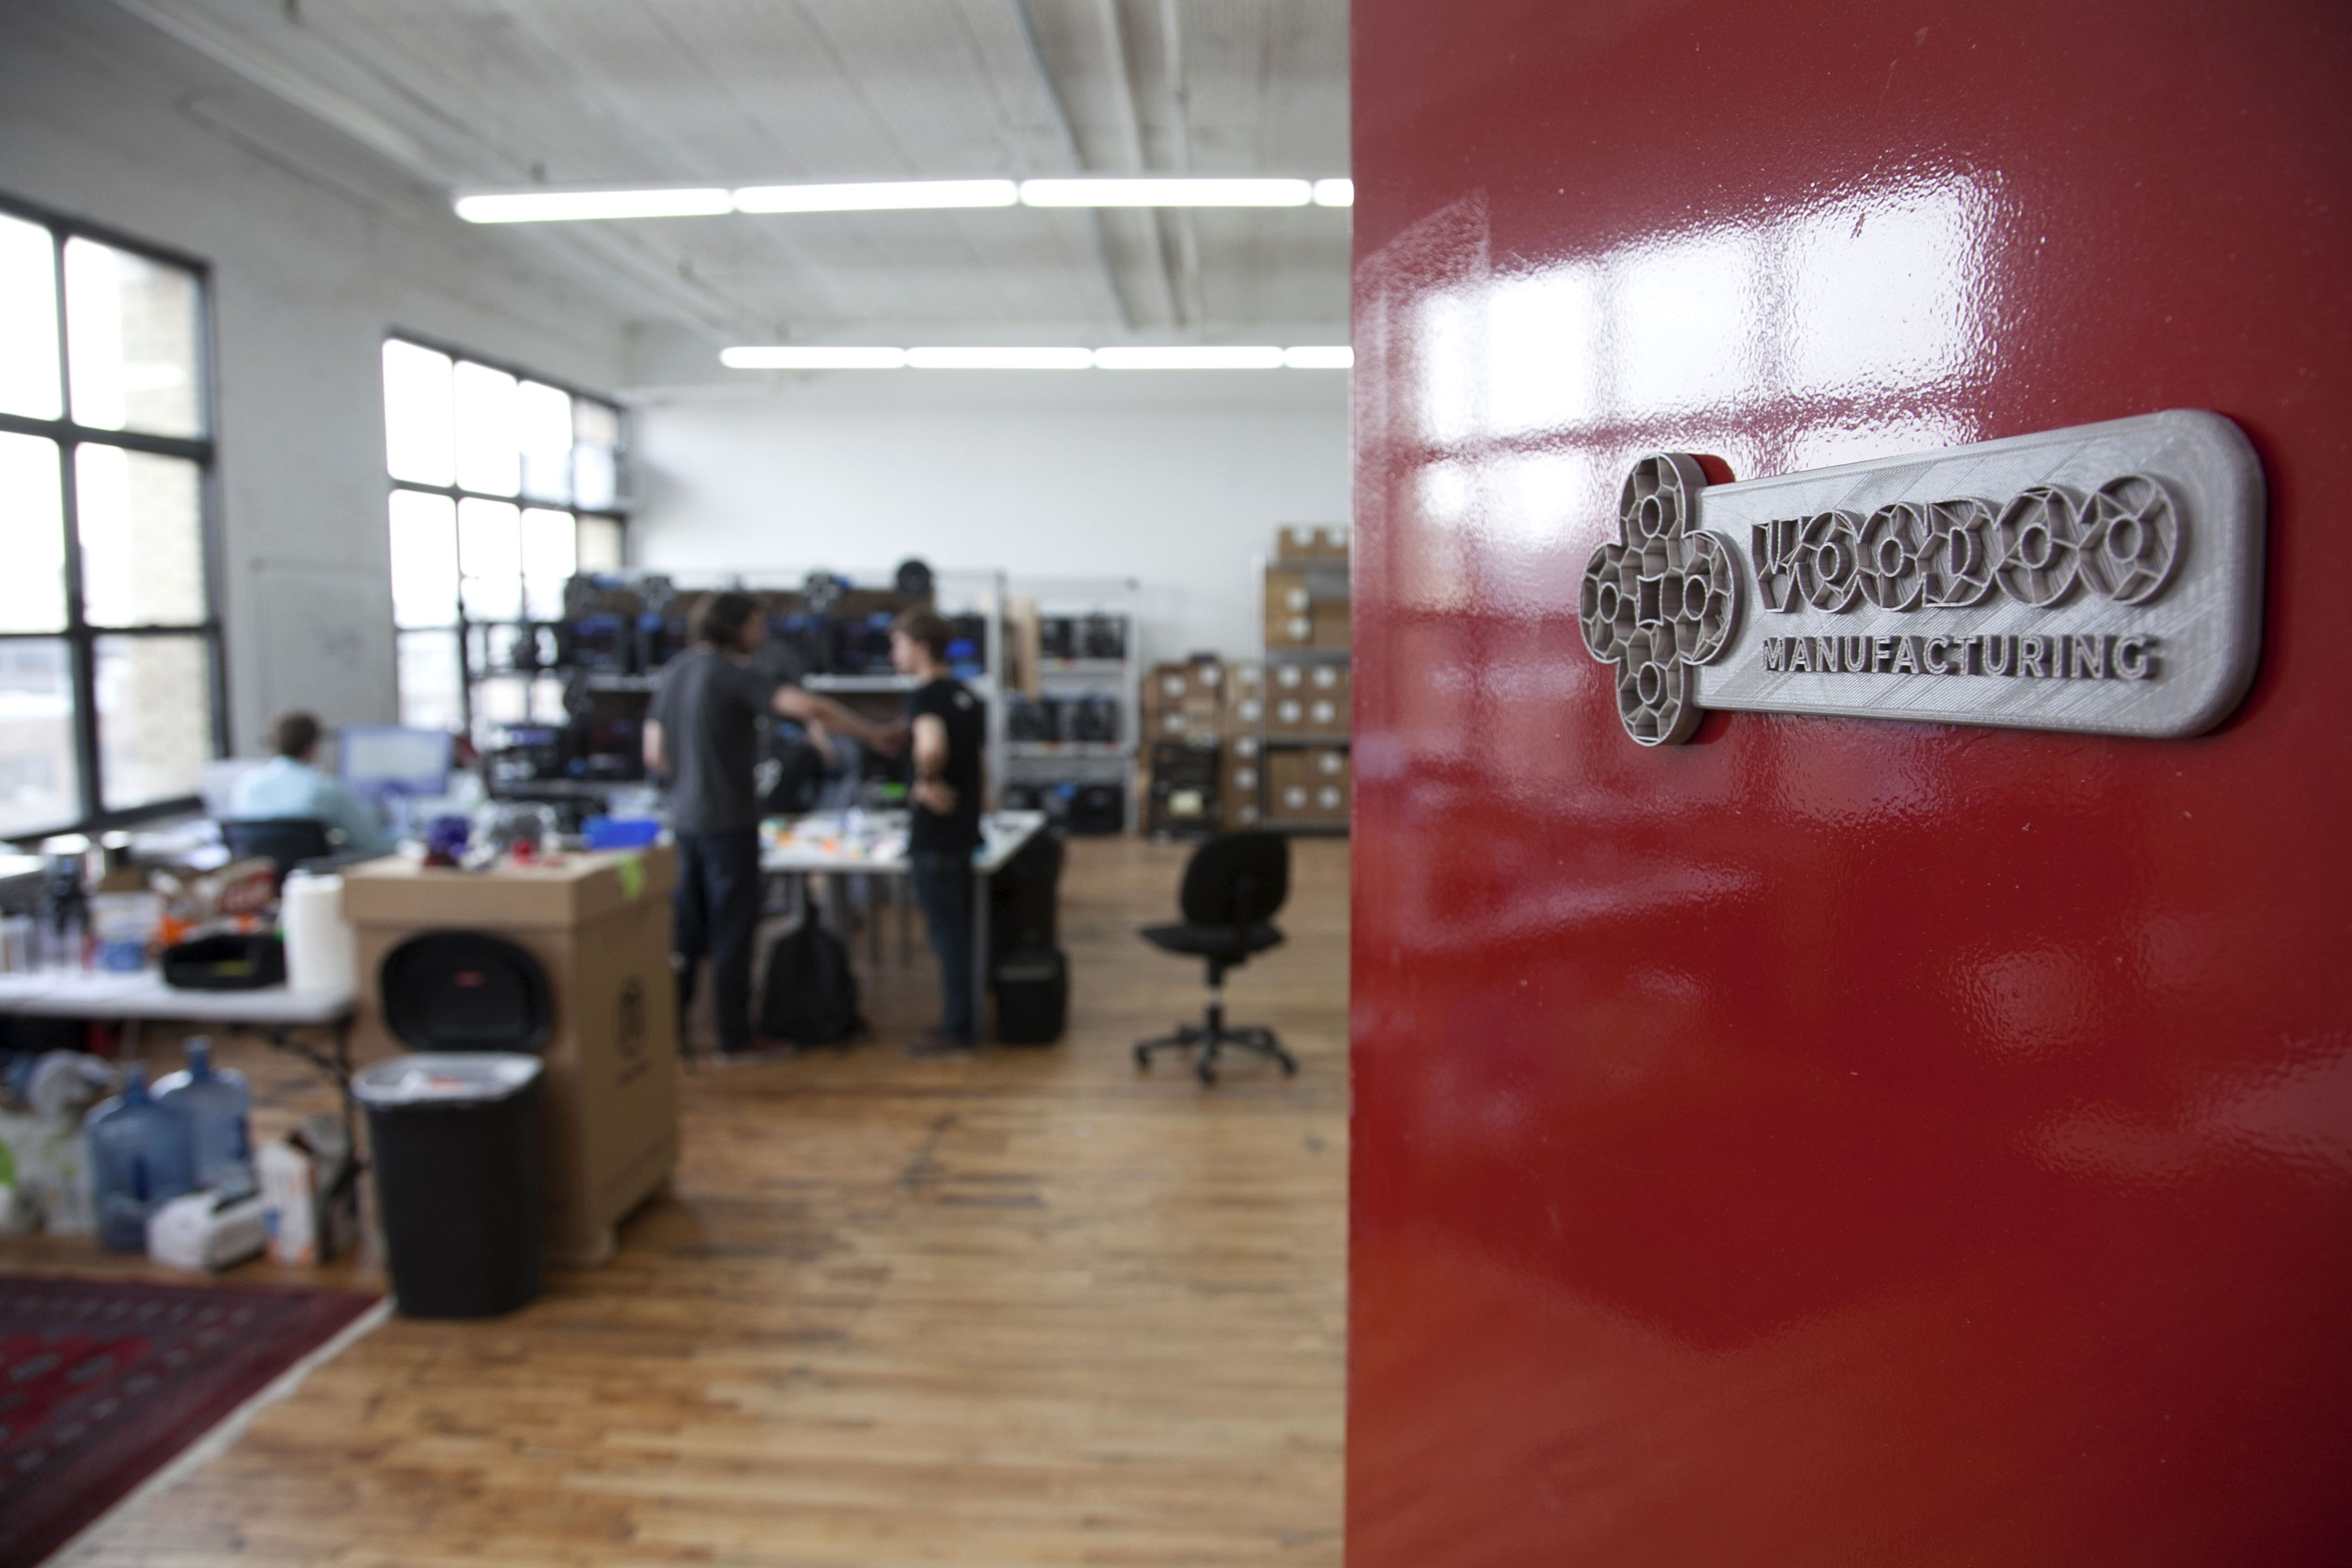 MakerBot spins off commercial 3D-printing service Voodoo